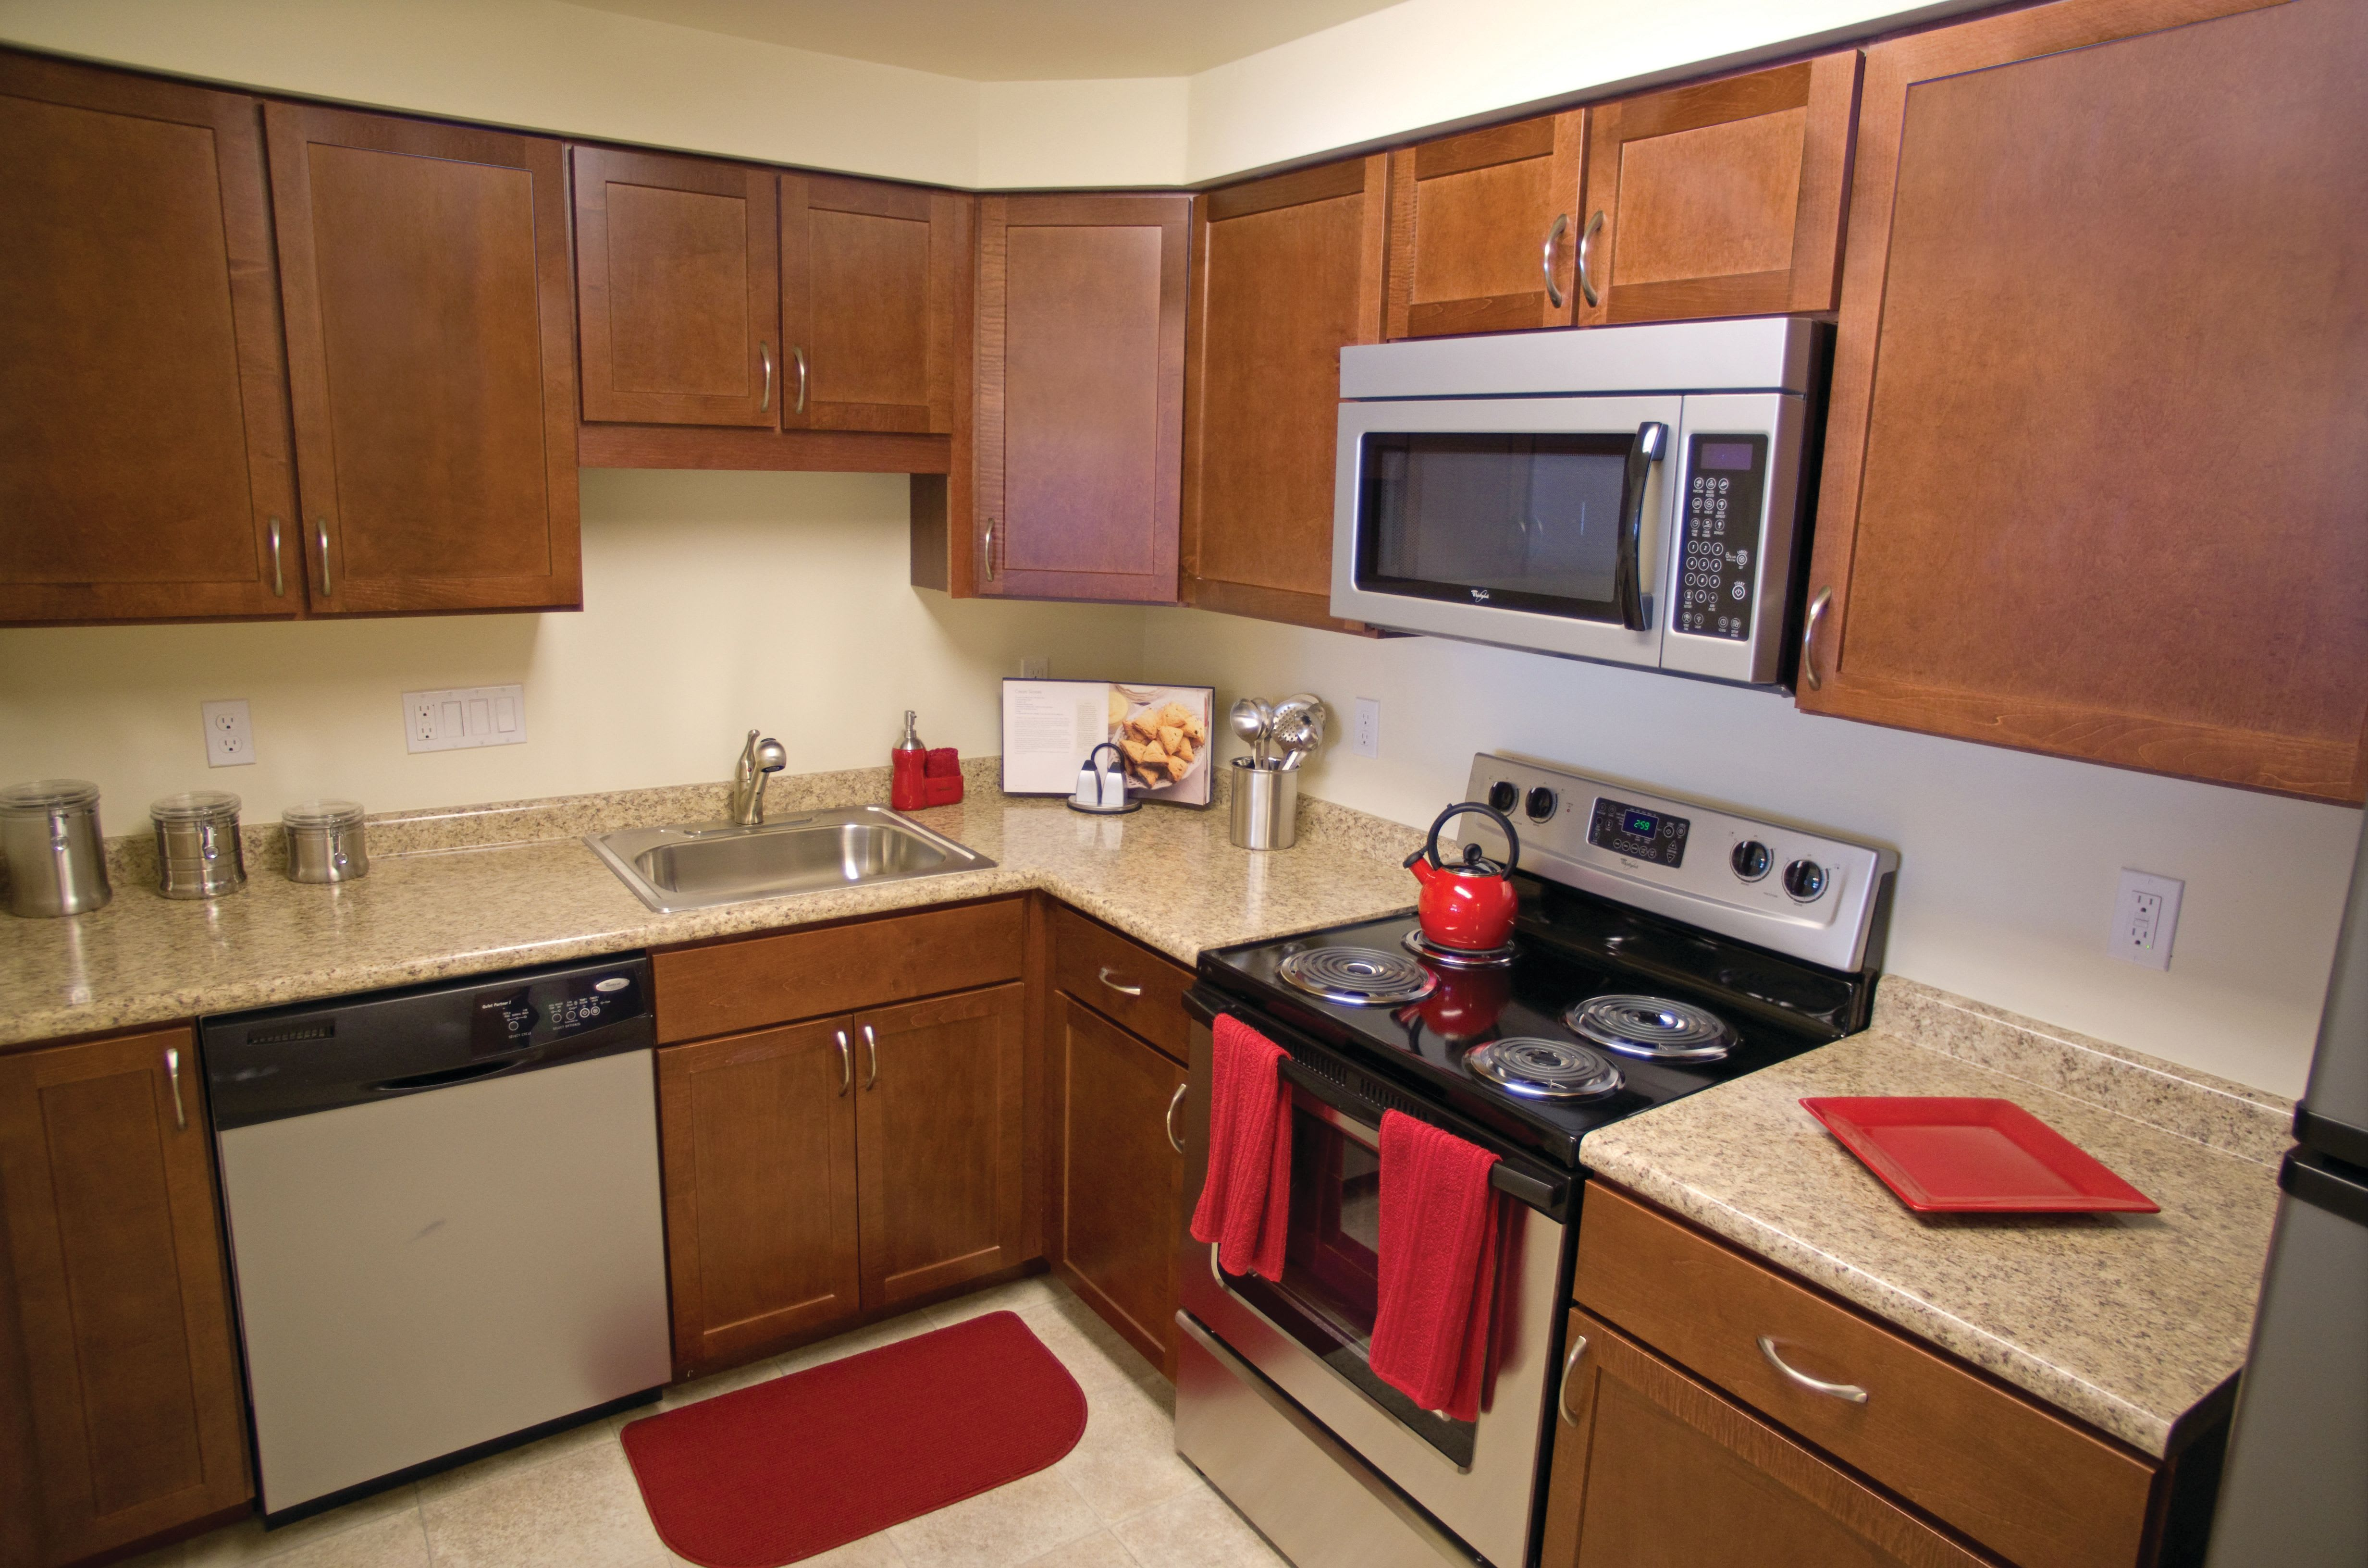 Kitchen with stainless steel appliances at Gardencrest in Waltham, Massachusetts